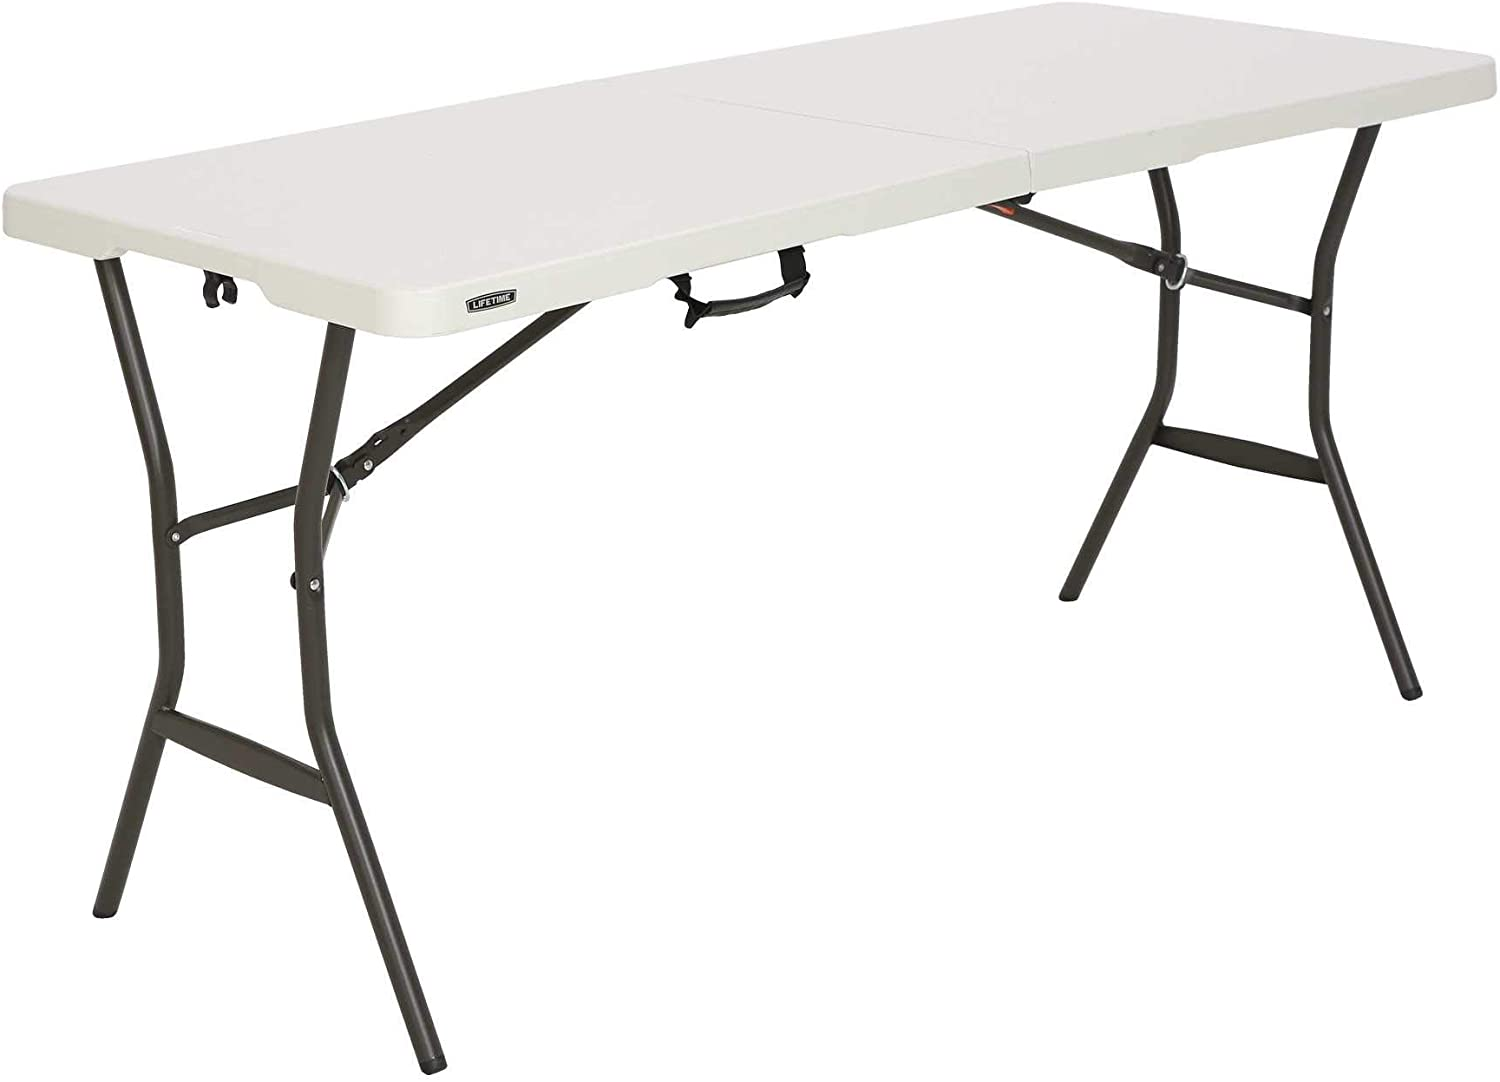 - Amazon.com: Lifetime 5' Essential Fold-in-Half Table: Kitchen & Dining